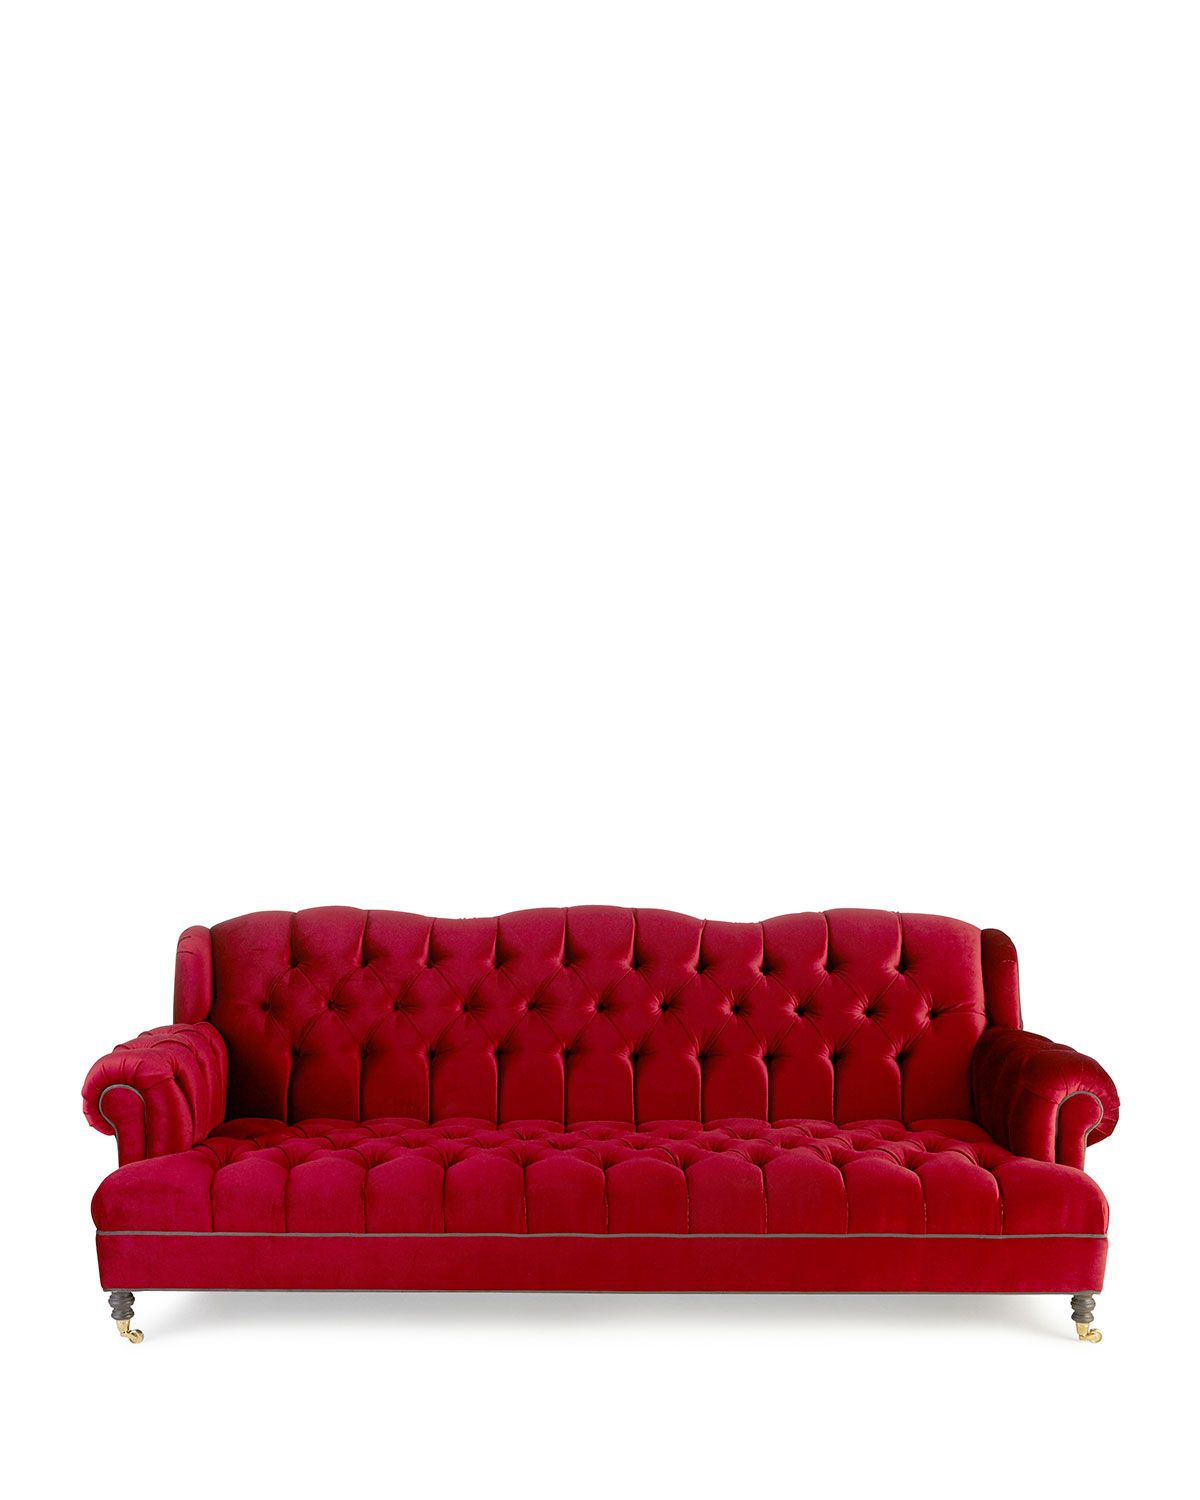 Incredible Haute House Mr Smith Cranberry Tufted Sofa 94 5 In 2019 Forskolin Free Trial Chair Design Images Forskolin Free Trialorg